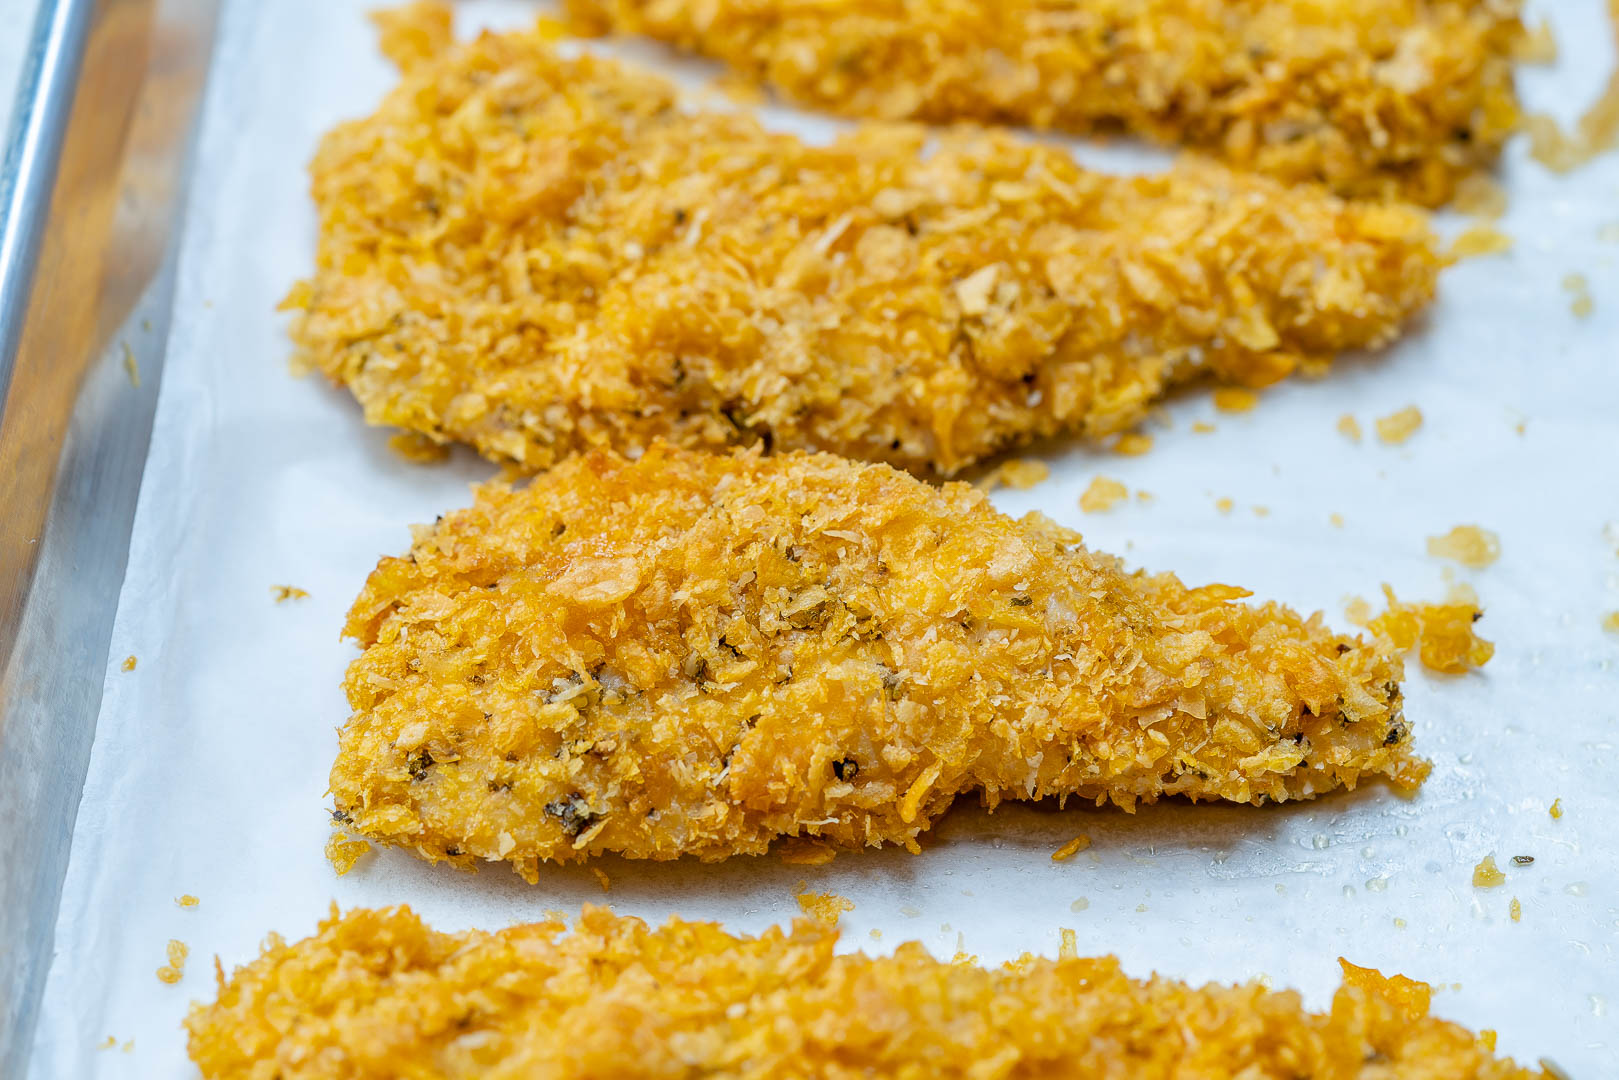 Baked Chicken Strip Zucchini Food Prep Guide